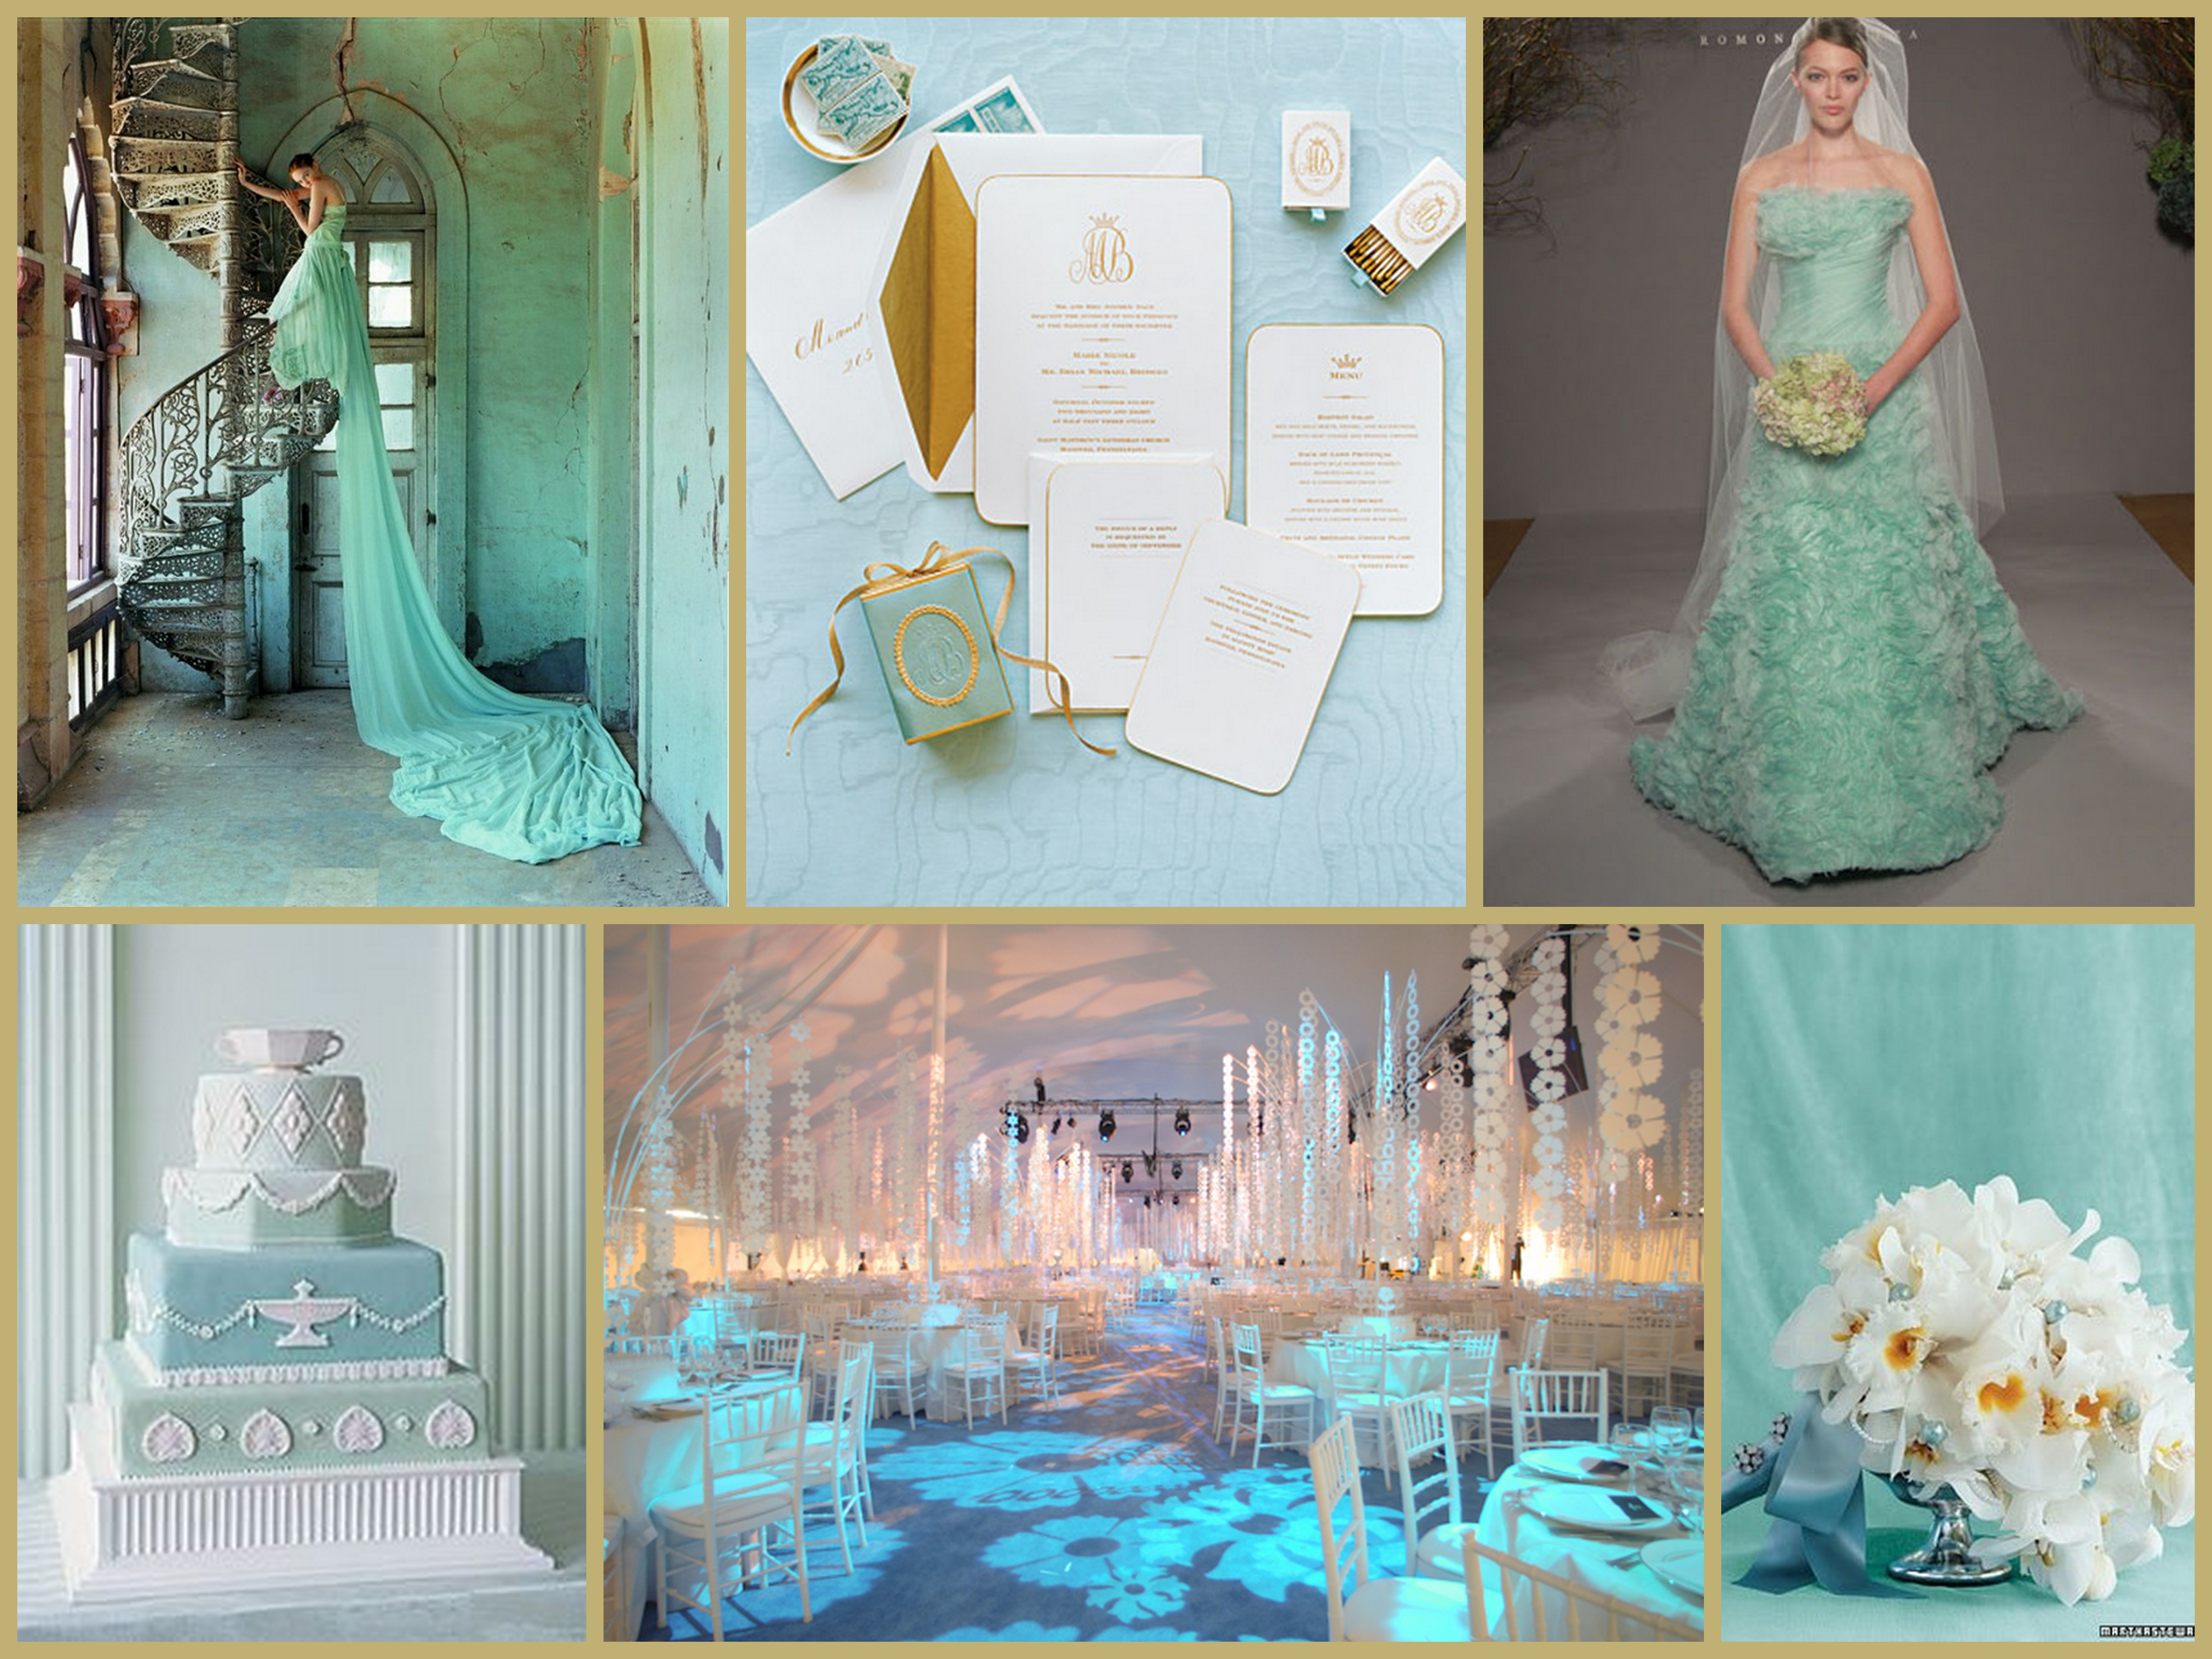 Turquoise beauty fantastical wedding stylings for What are wedding themes